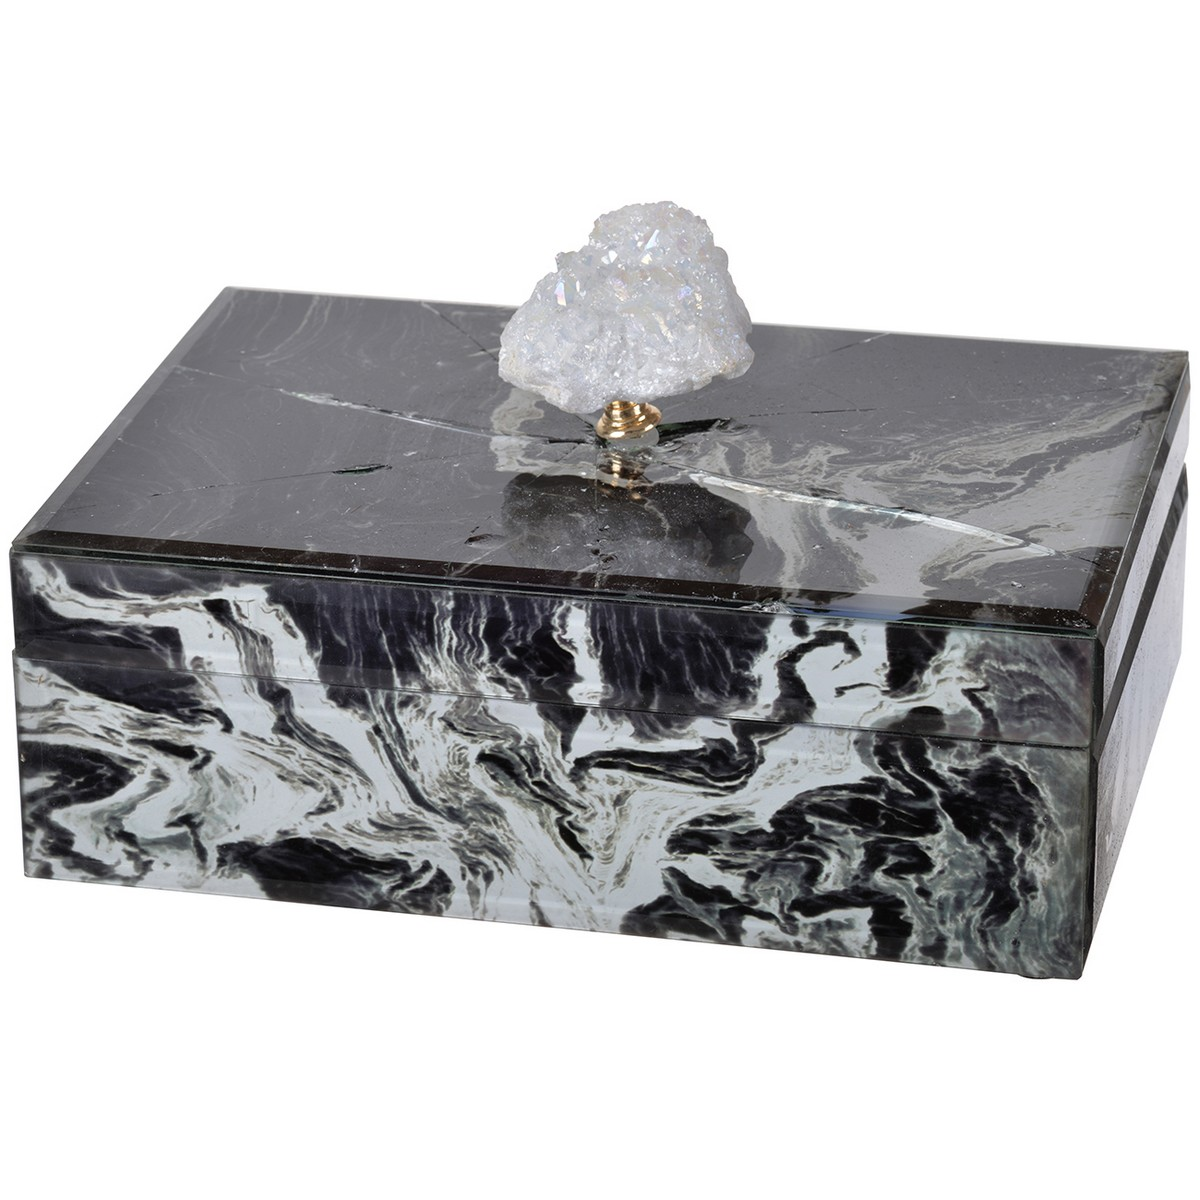 Excellent Black Marble & White Geode Glass Jewelry Box - SPECIAL VJ22